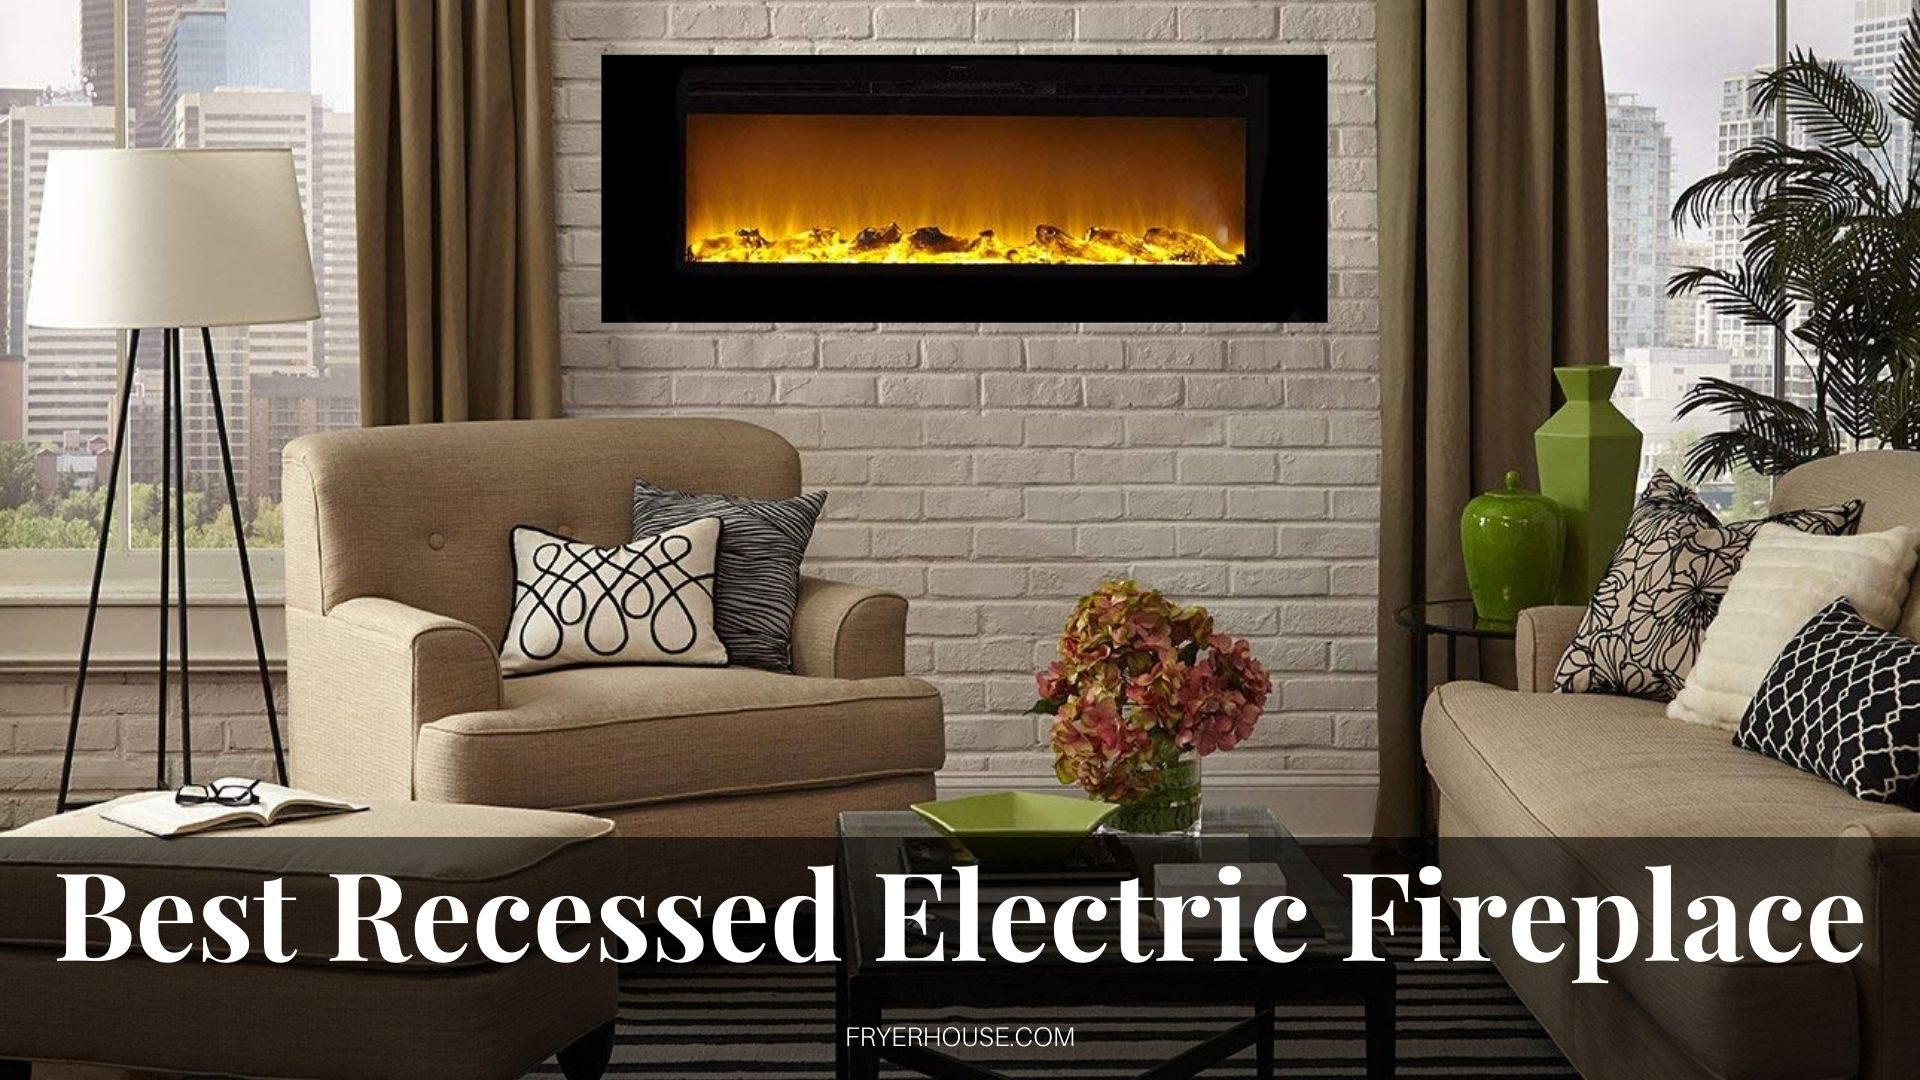 Best Recessed Electric Fireplace